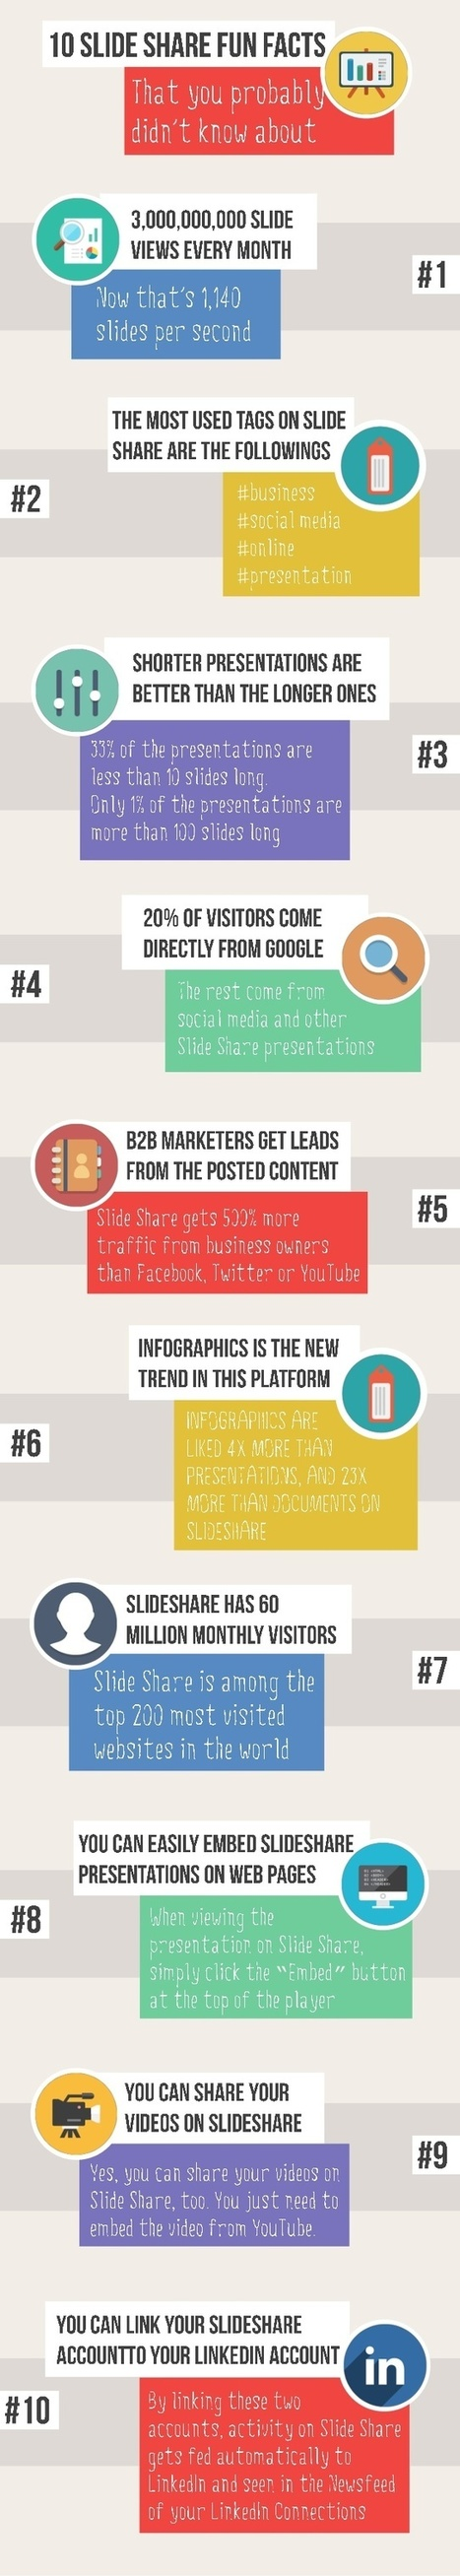 10 datos interesantes sobre Slideshare #infografia #infographic #socialmedia | Seo, Social Media Marketing | Scoop.it